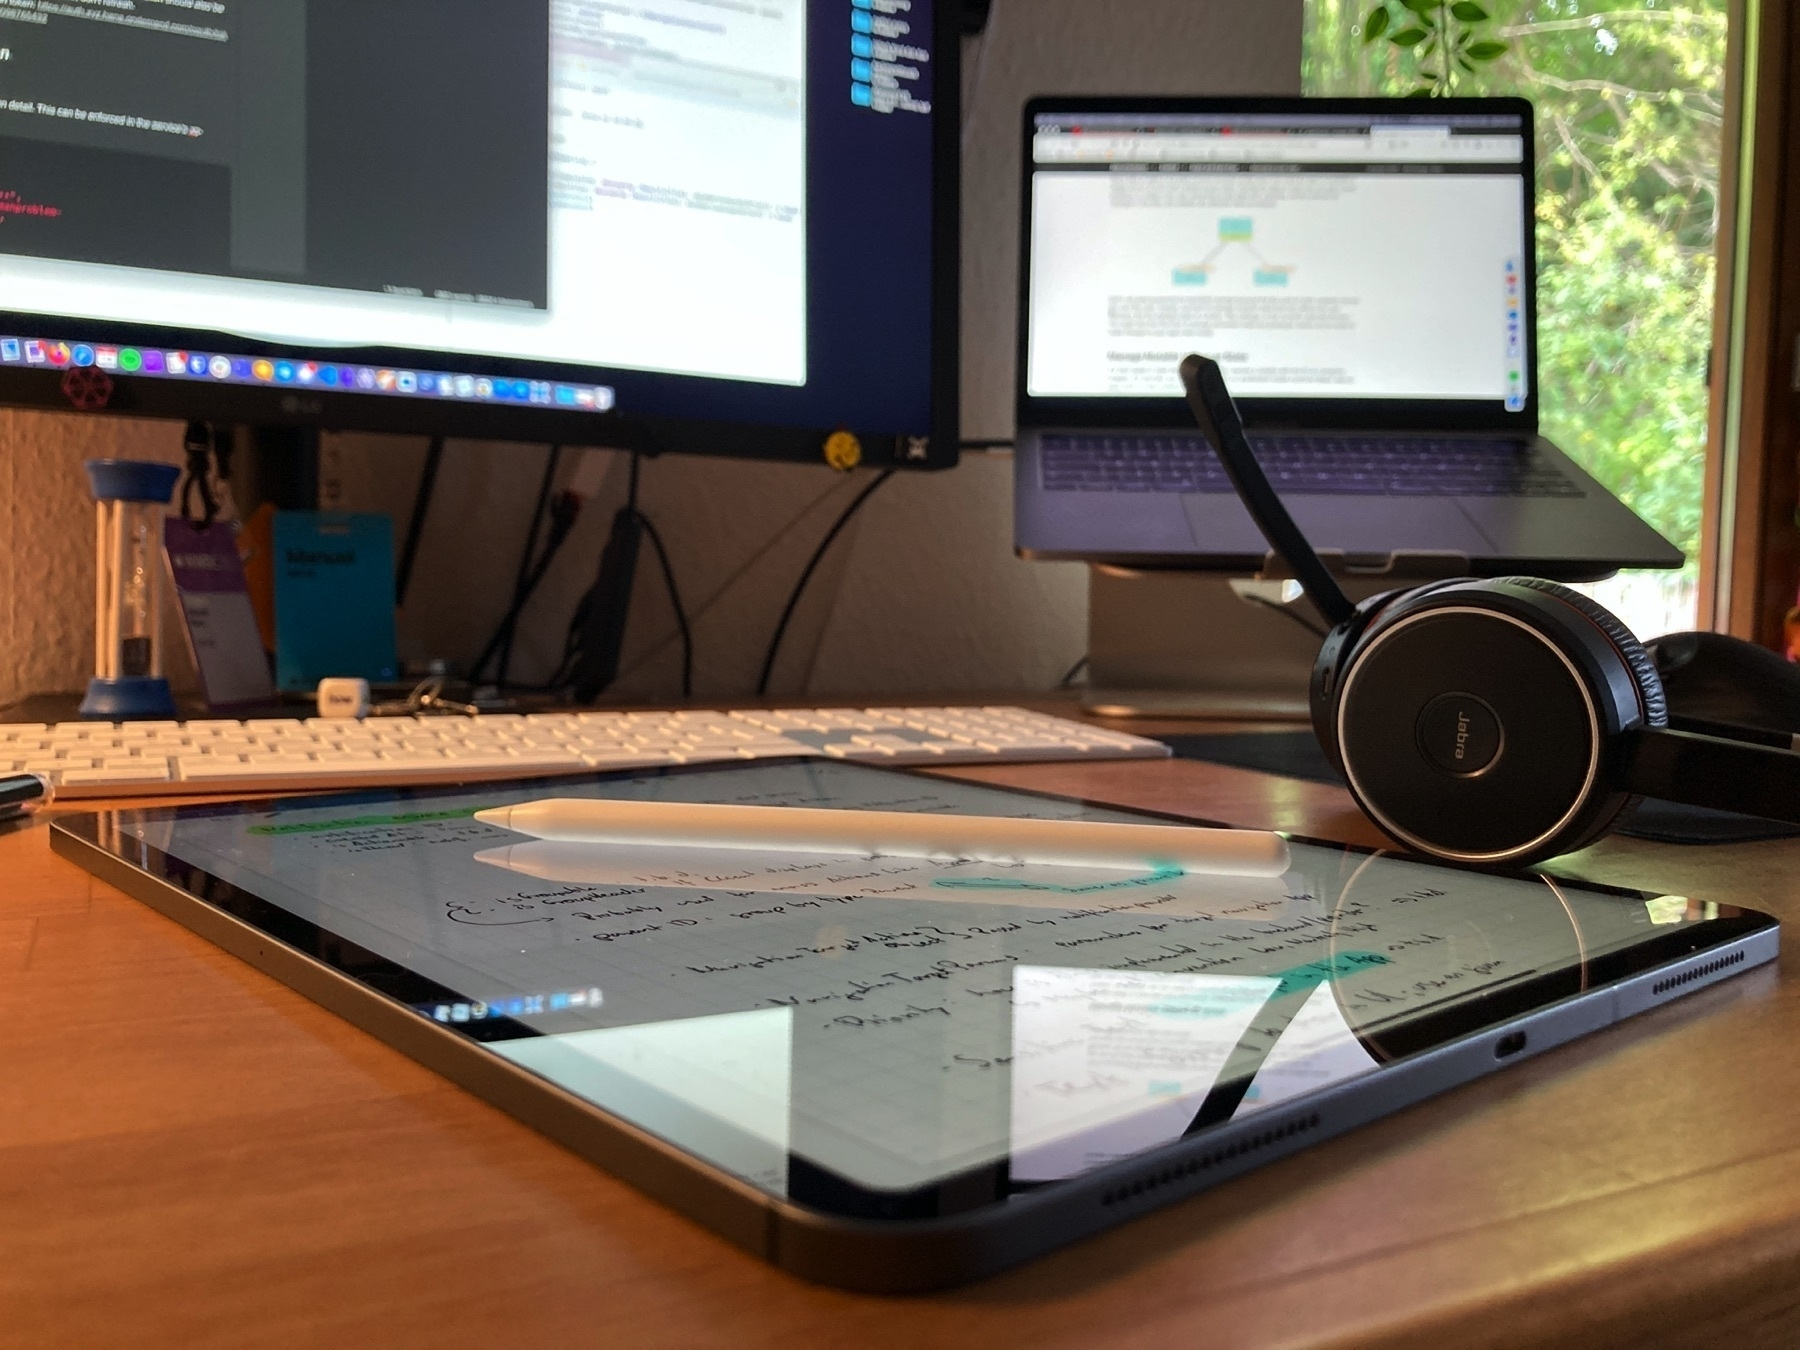 Desk with monitor, iPad and headset.